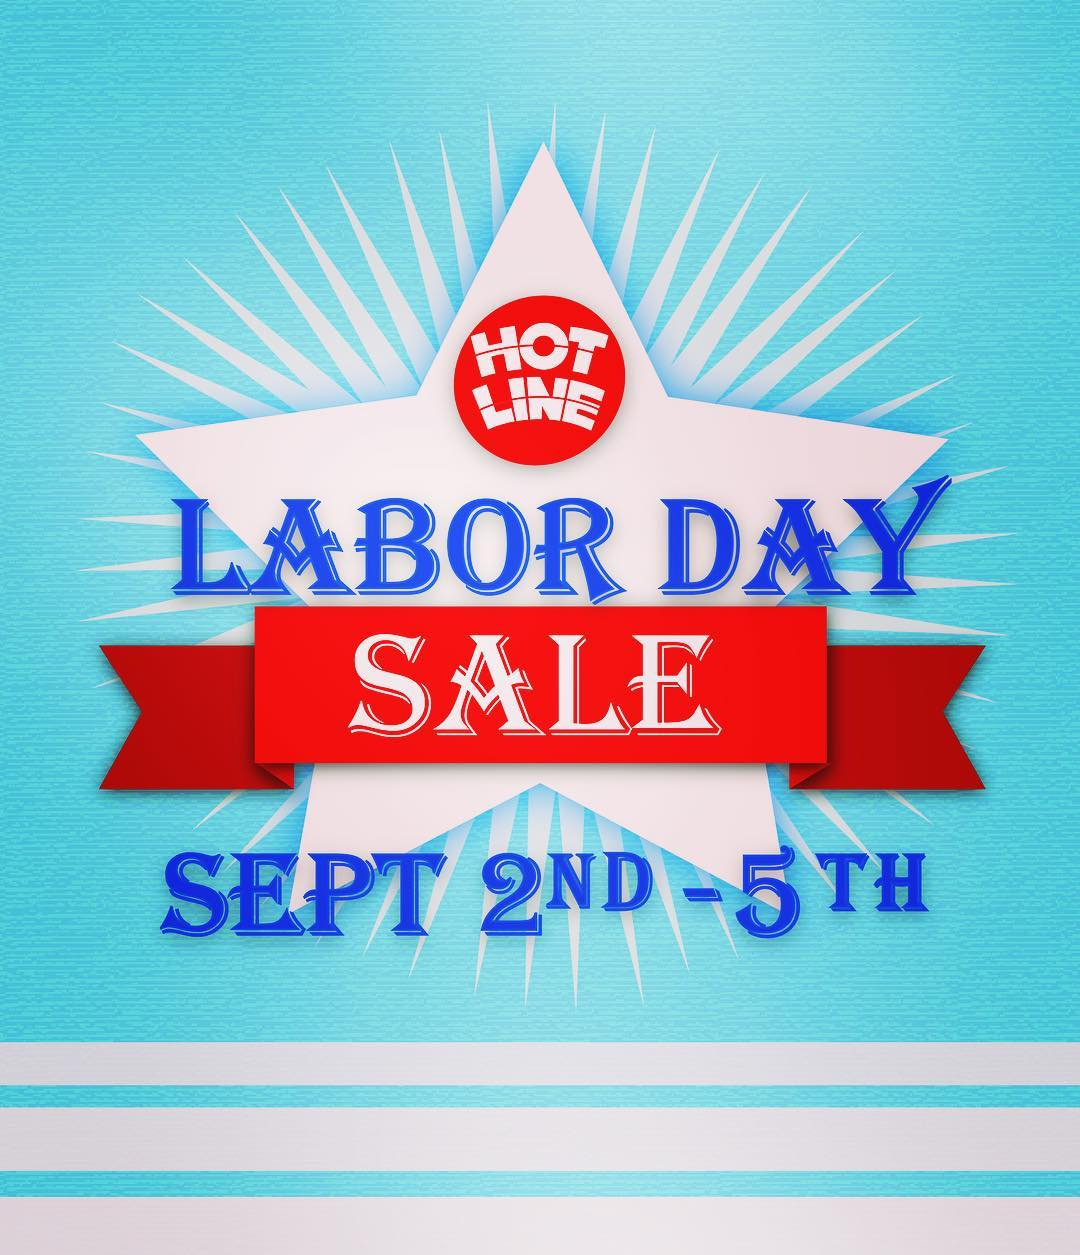 Labor Day Sale!!! Stop by the Hotline Showroom Sept. 2nd - 5th for great deals!!! (This sale will not be on our website. Please call the showroom (831)425-5924 if you would like to order.) #laborday #sale #surf #surflife